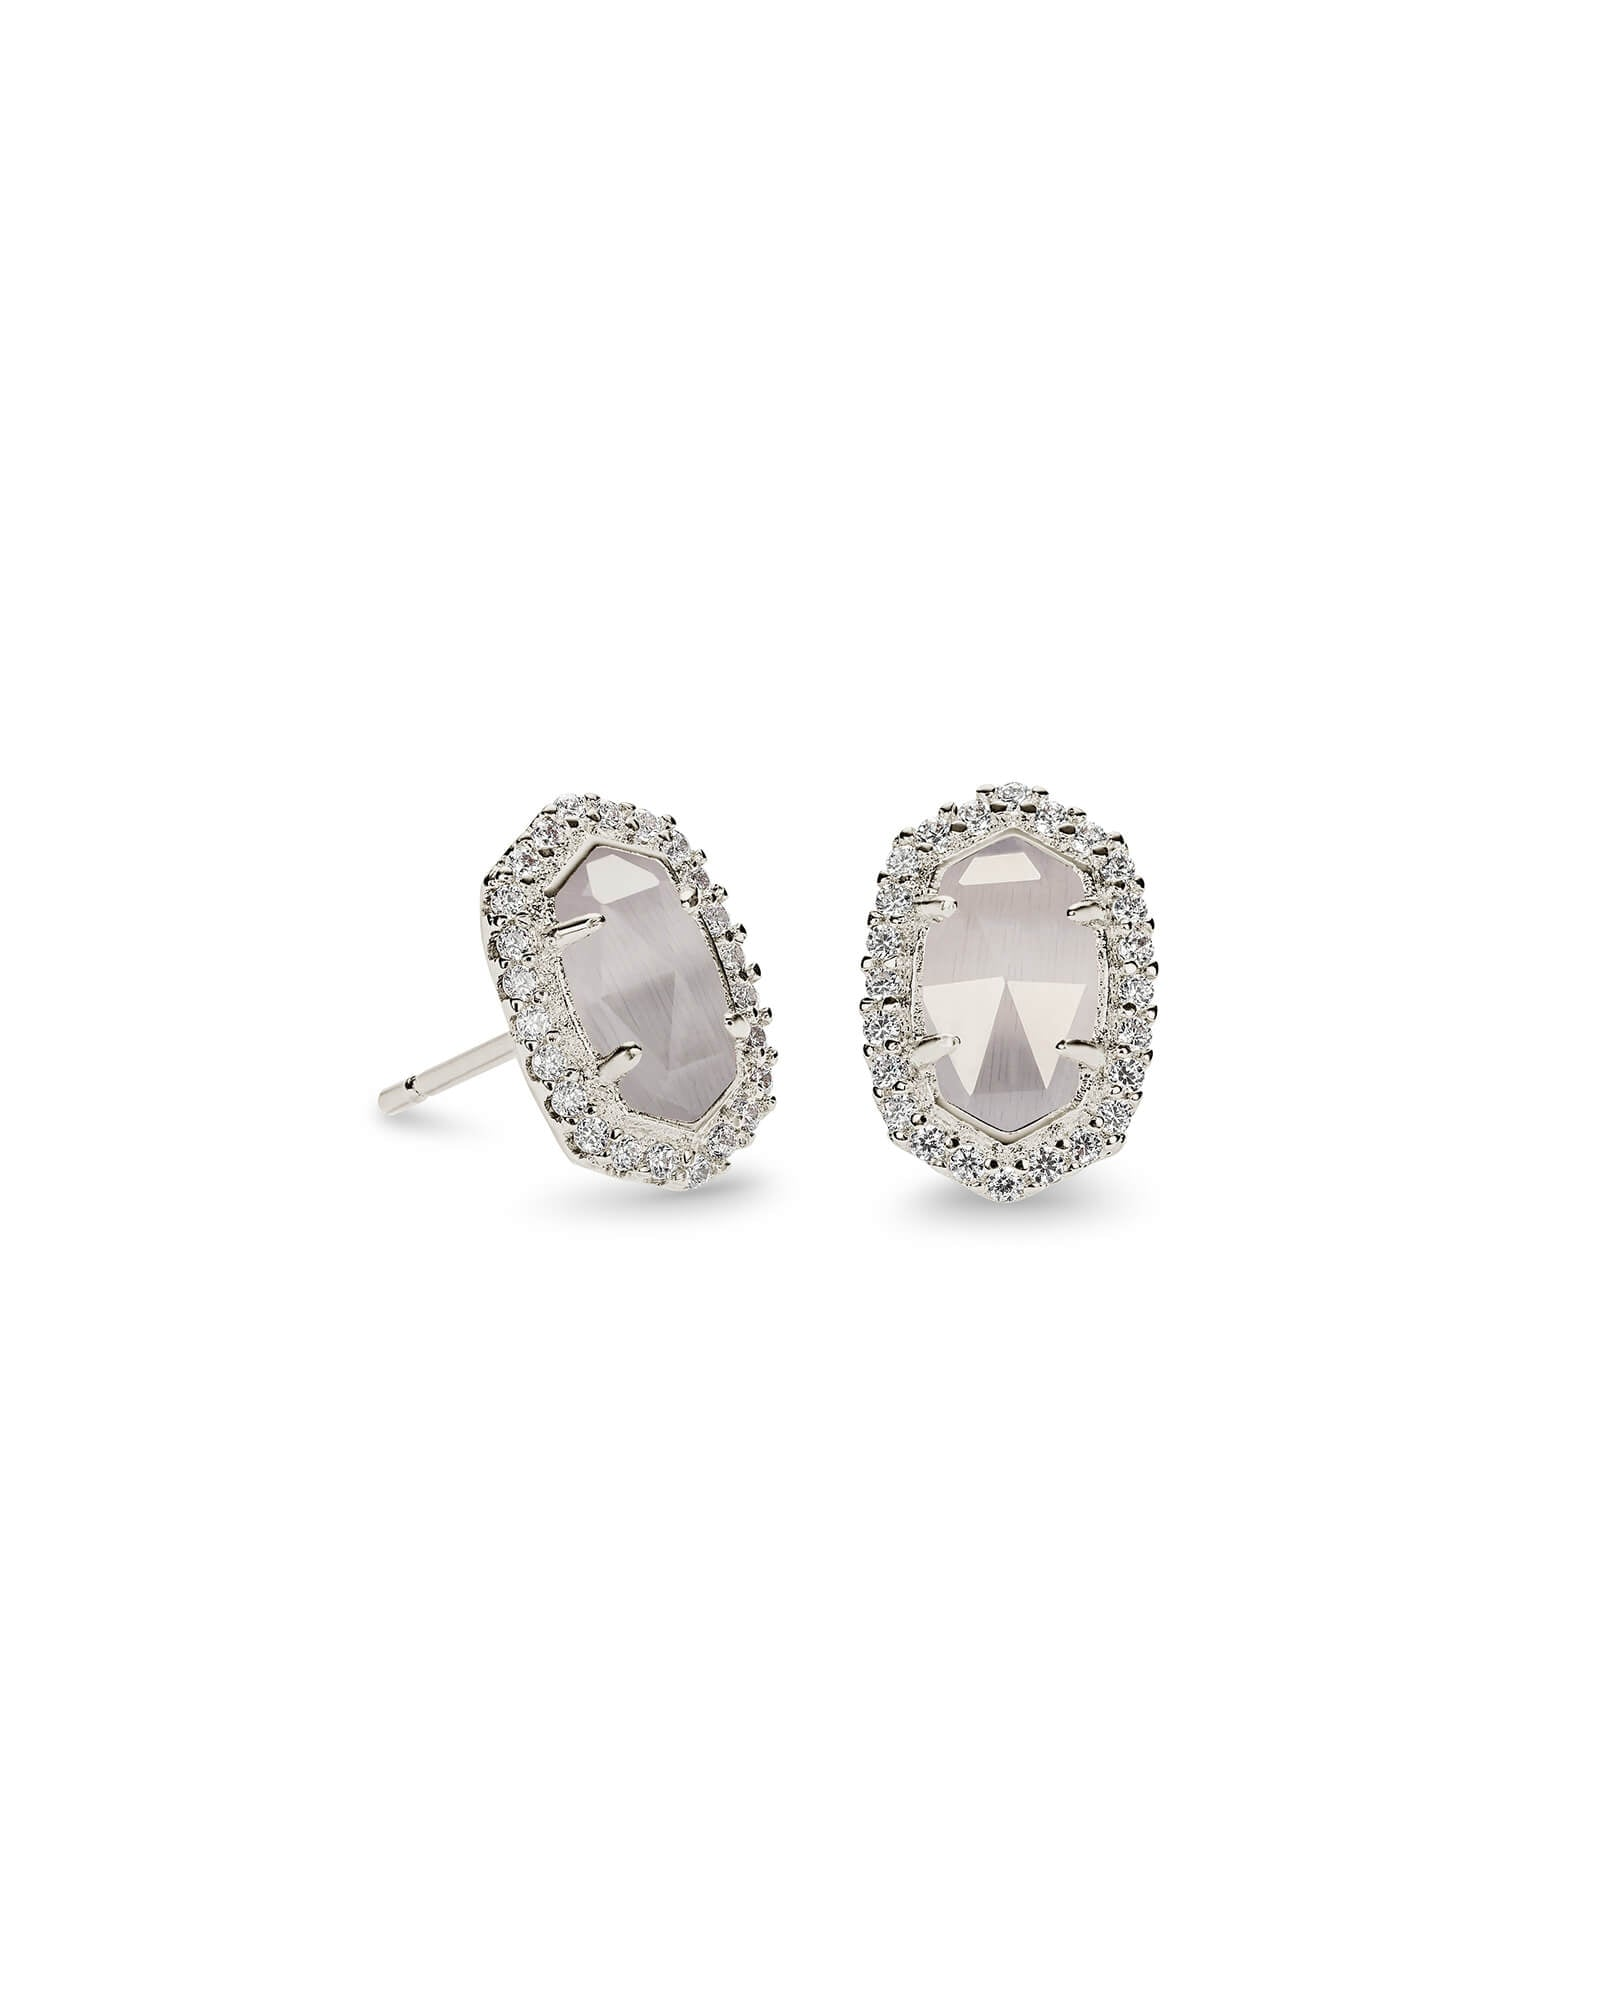 Cade Silver Stud Earrings